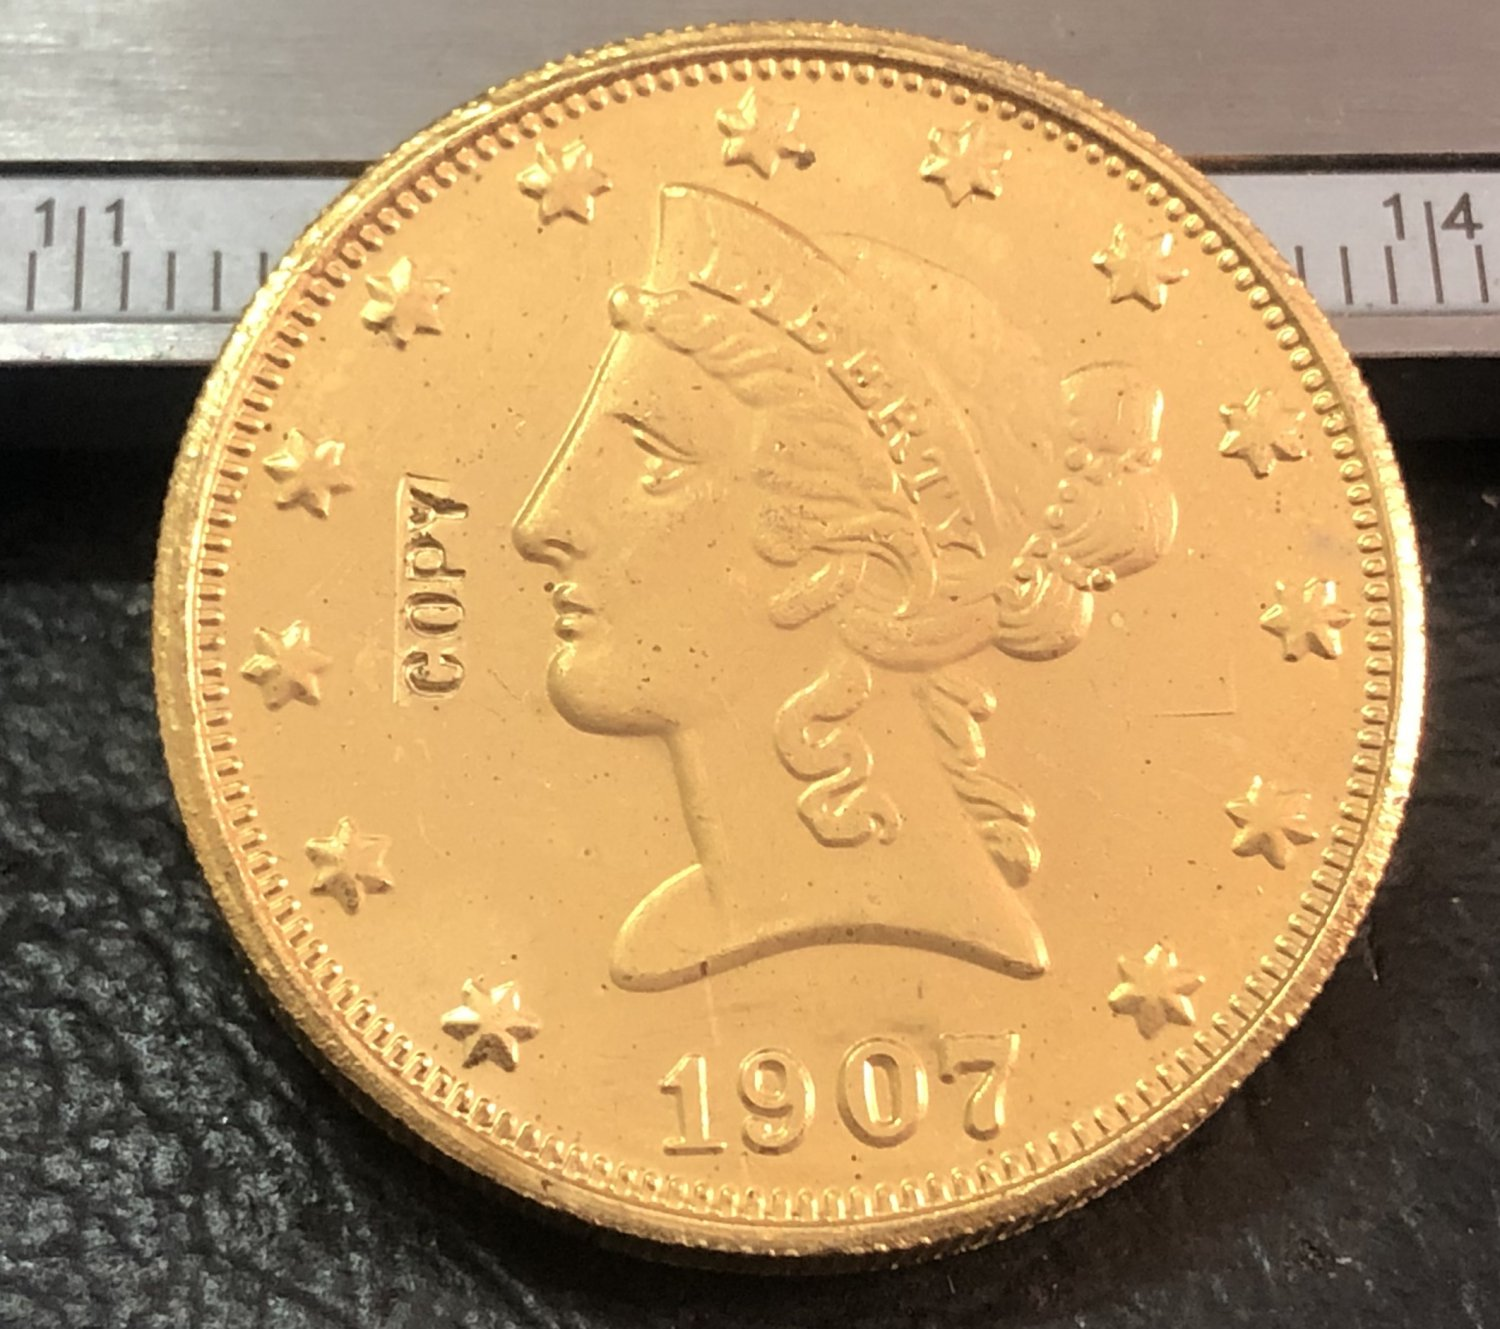 1 Pcs 1907-S Liberty Head $10 Ten Dollar Copy Coins  For Collection